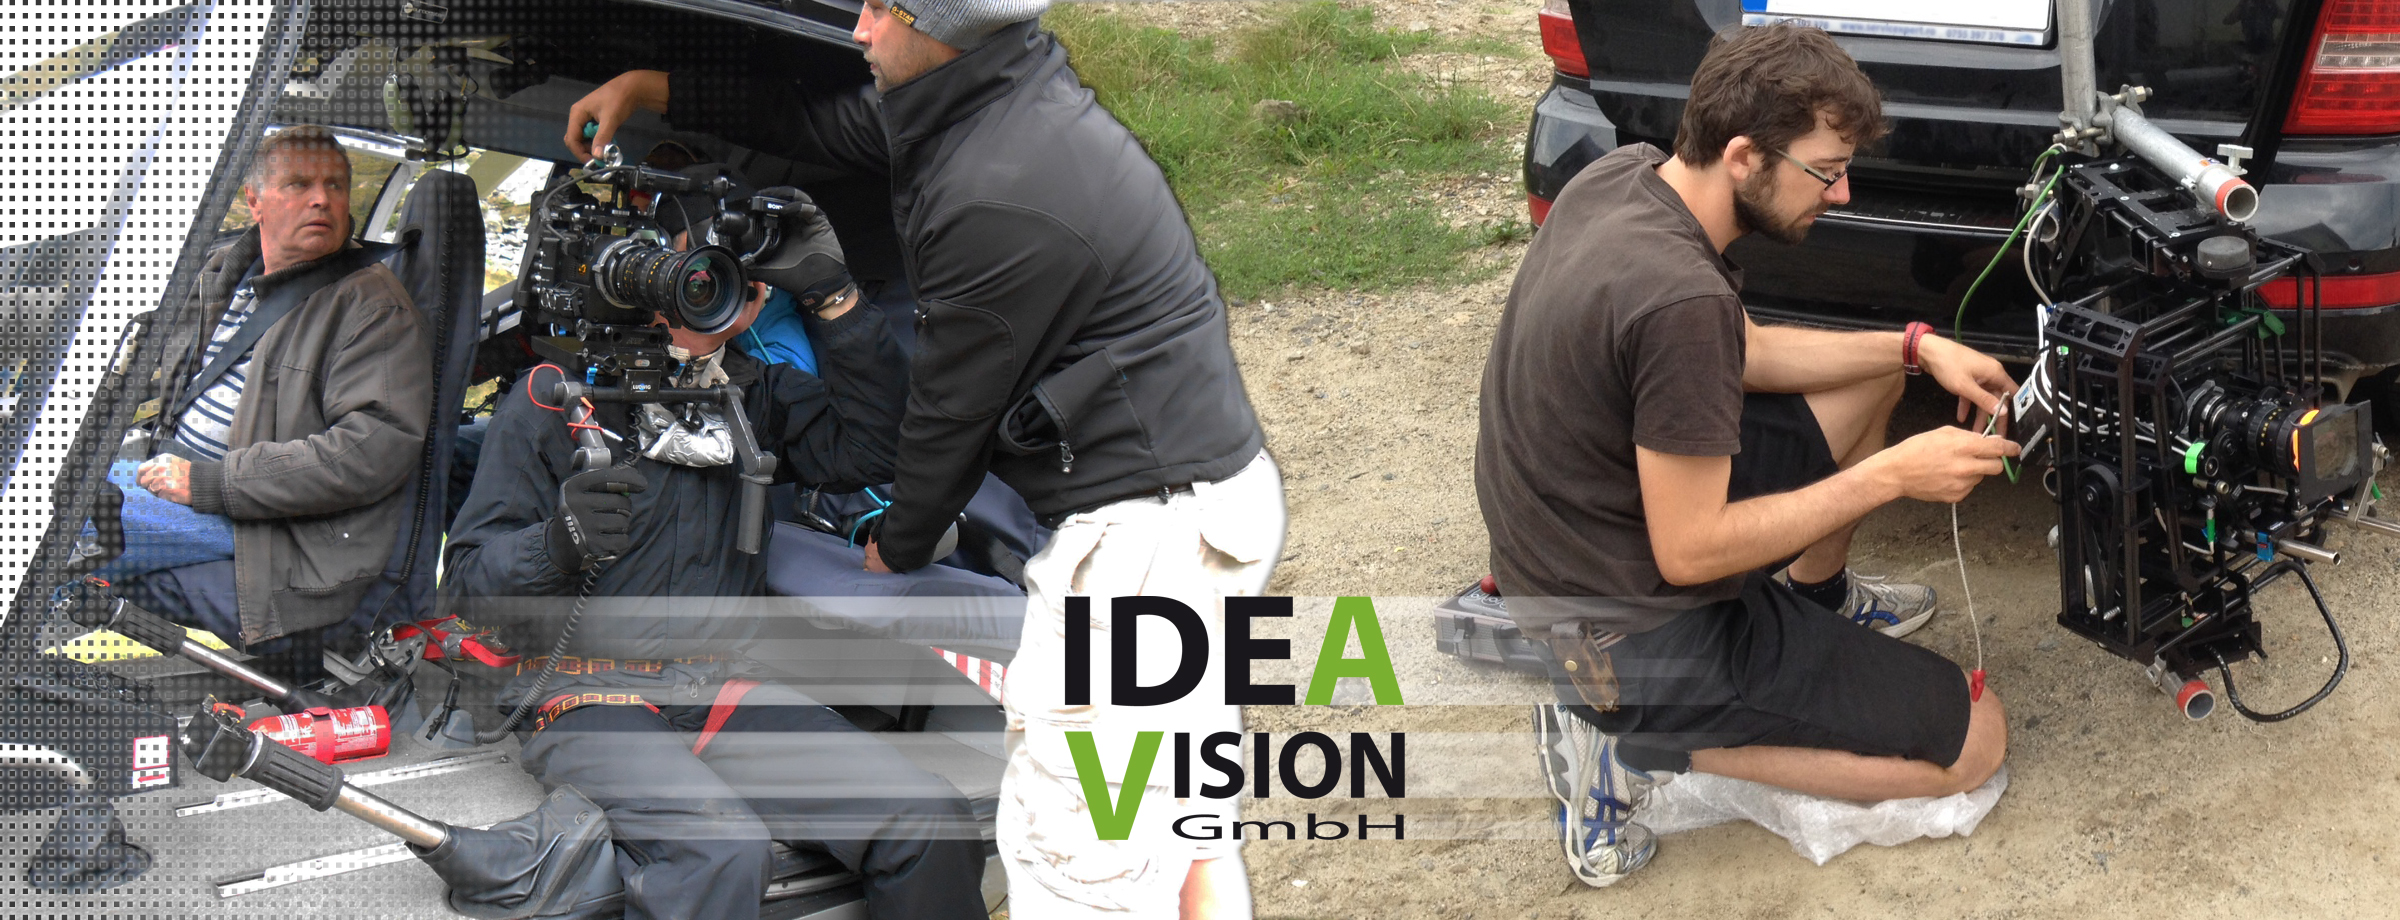 IDEA VISION technical service